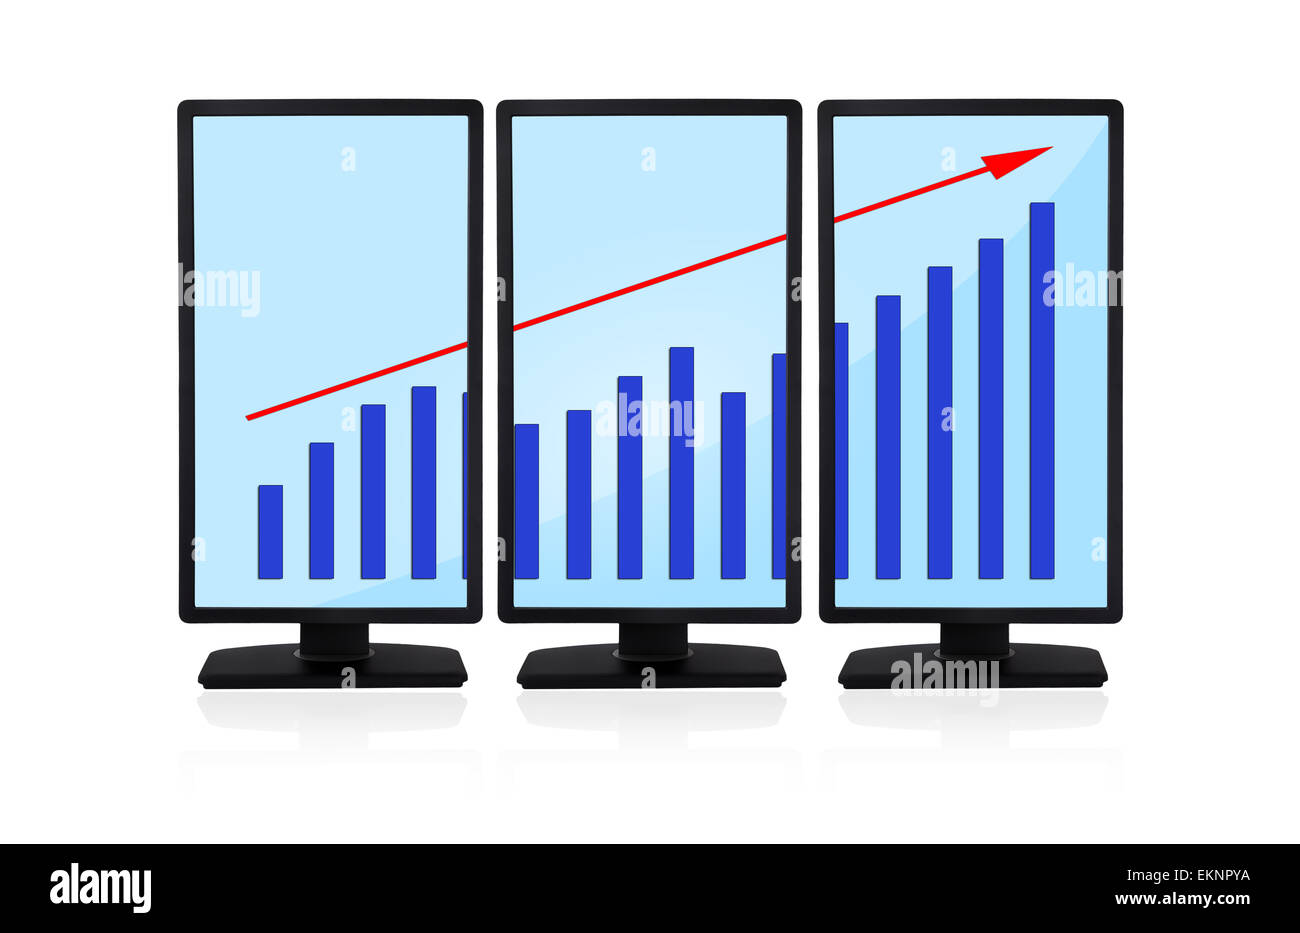 panels with chart - Stock Image